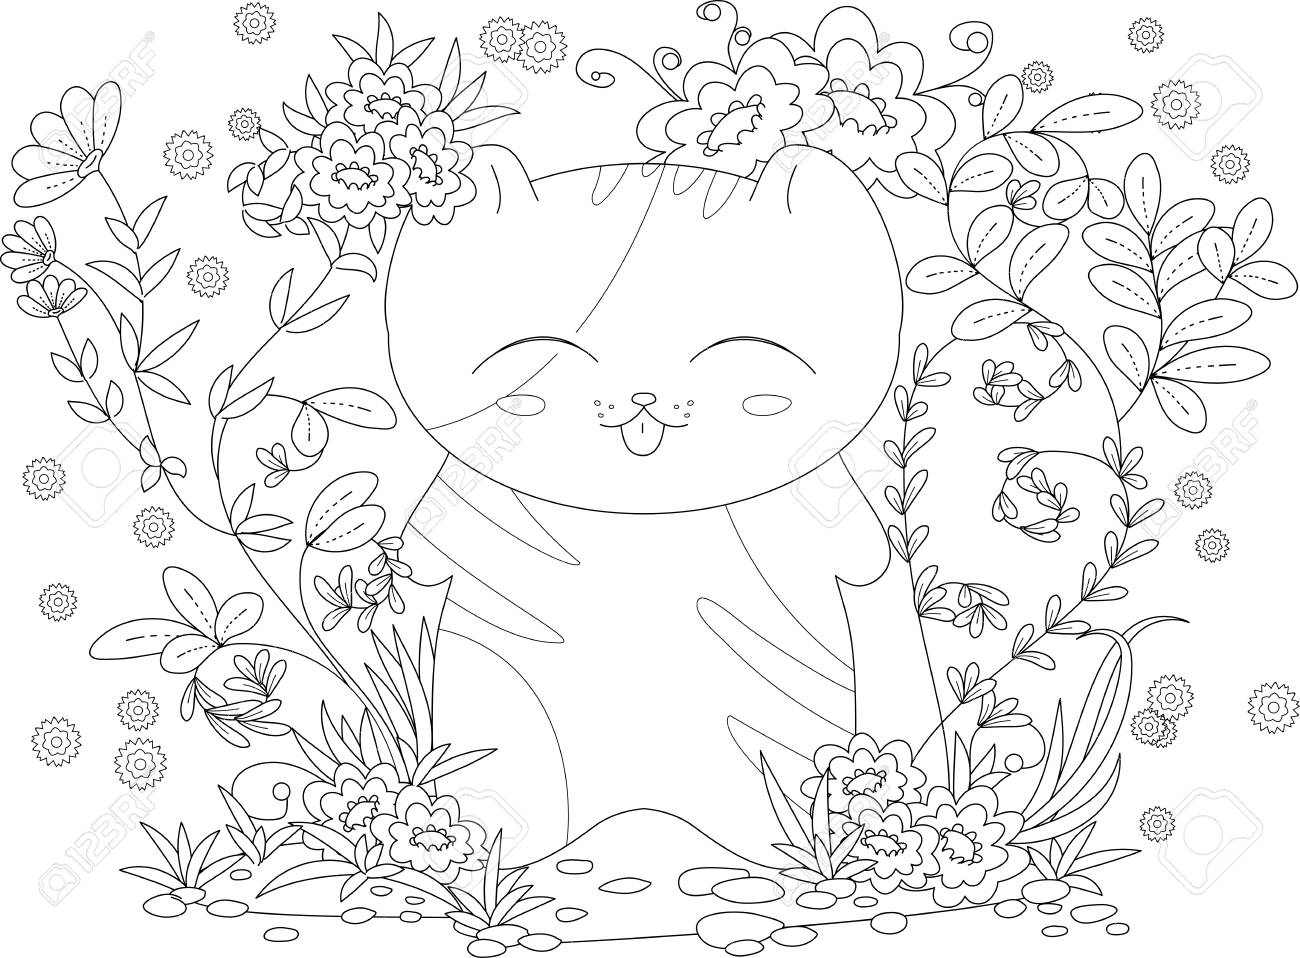 Coloring book page for adult and kids. happy kitten with flowers..